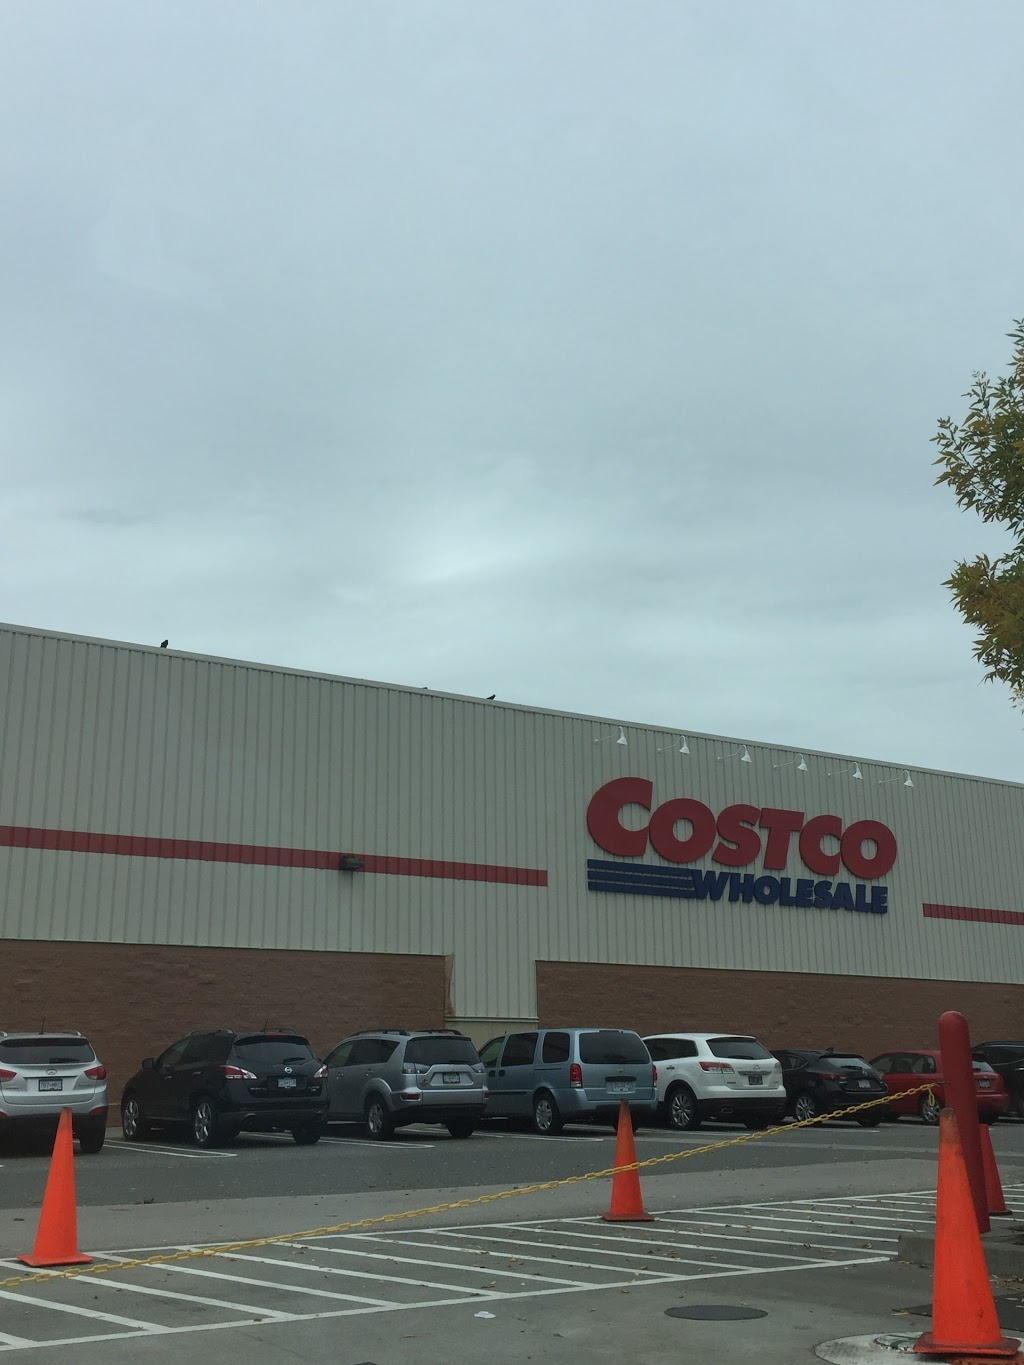 Costco Gasoline | gas station | 20499 64 Ave, Langley City, BC V2Y 1N5, Canada | 6045398901 OR +1 604-539-8901